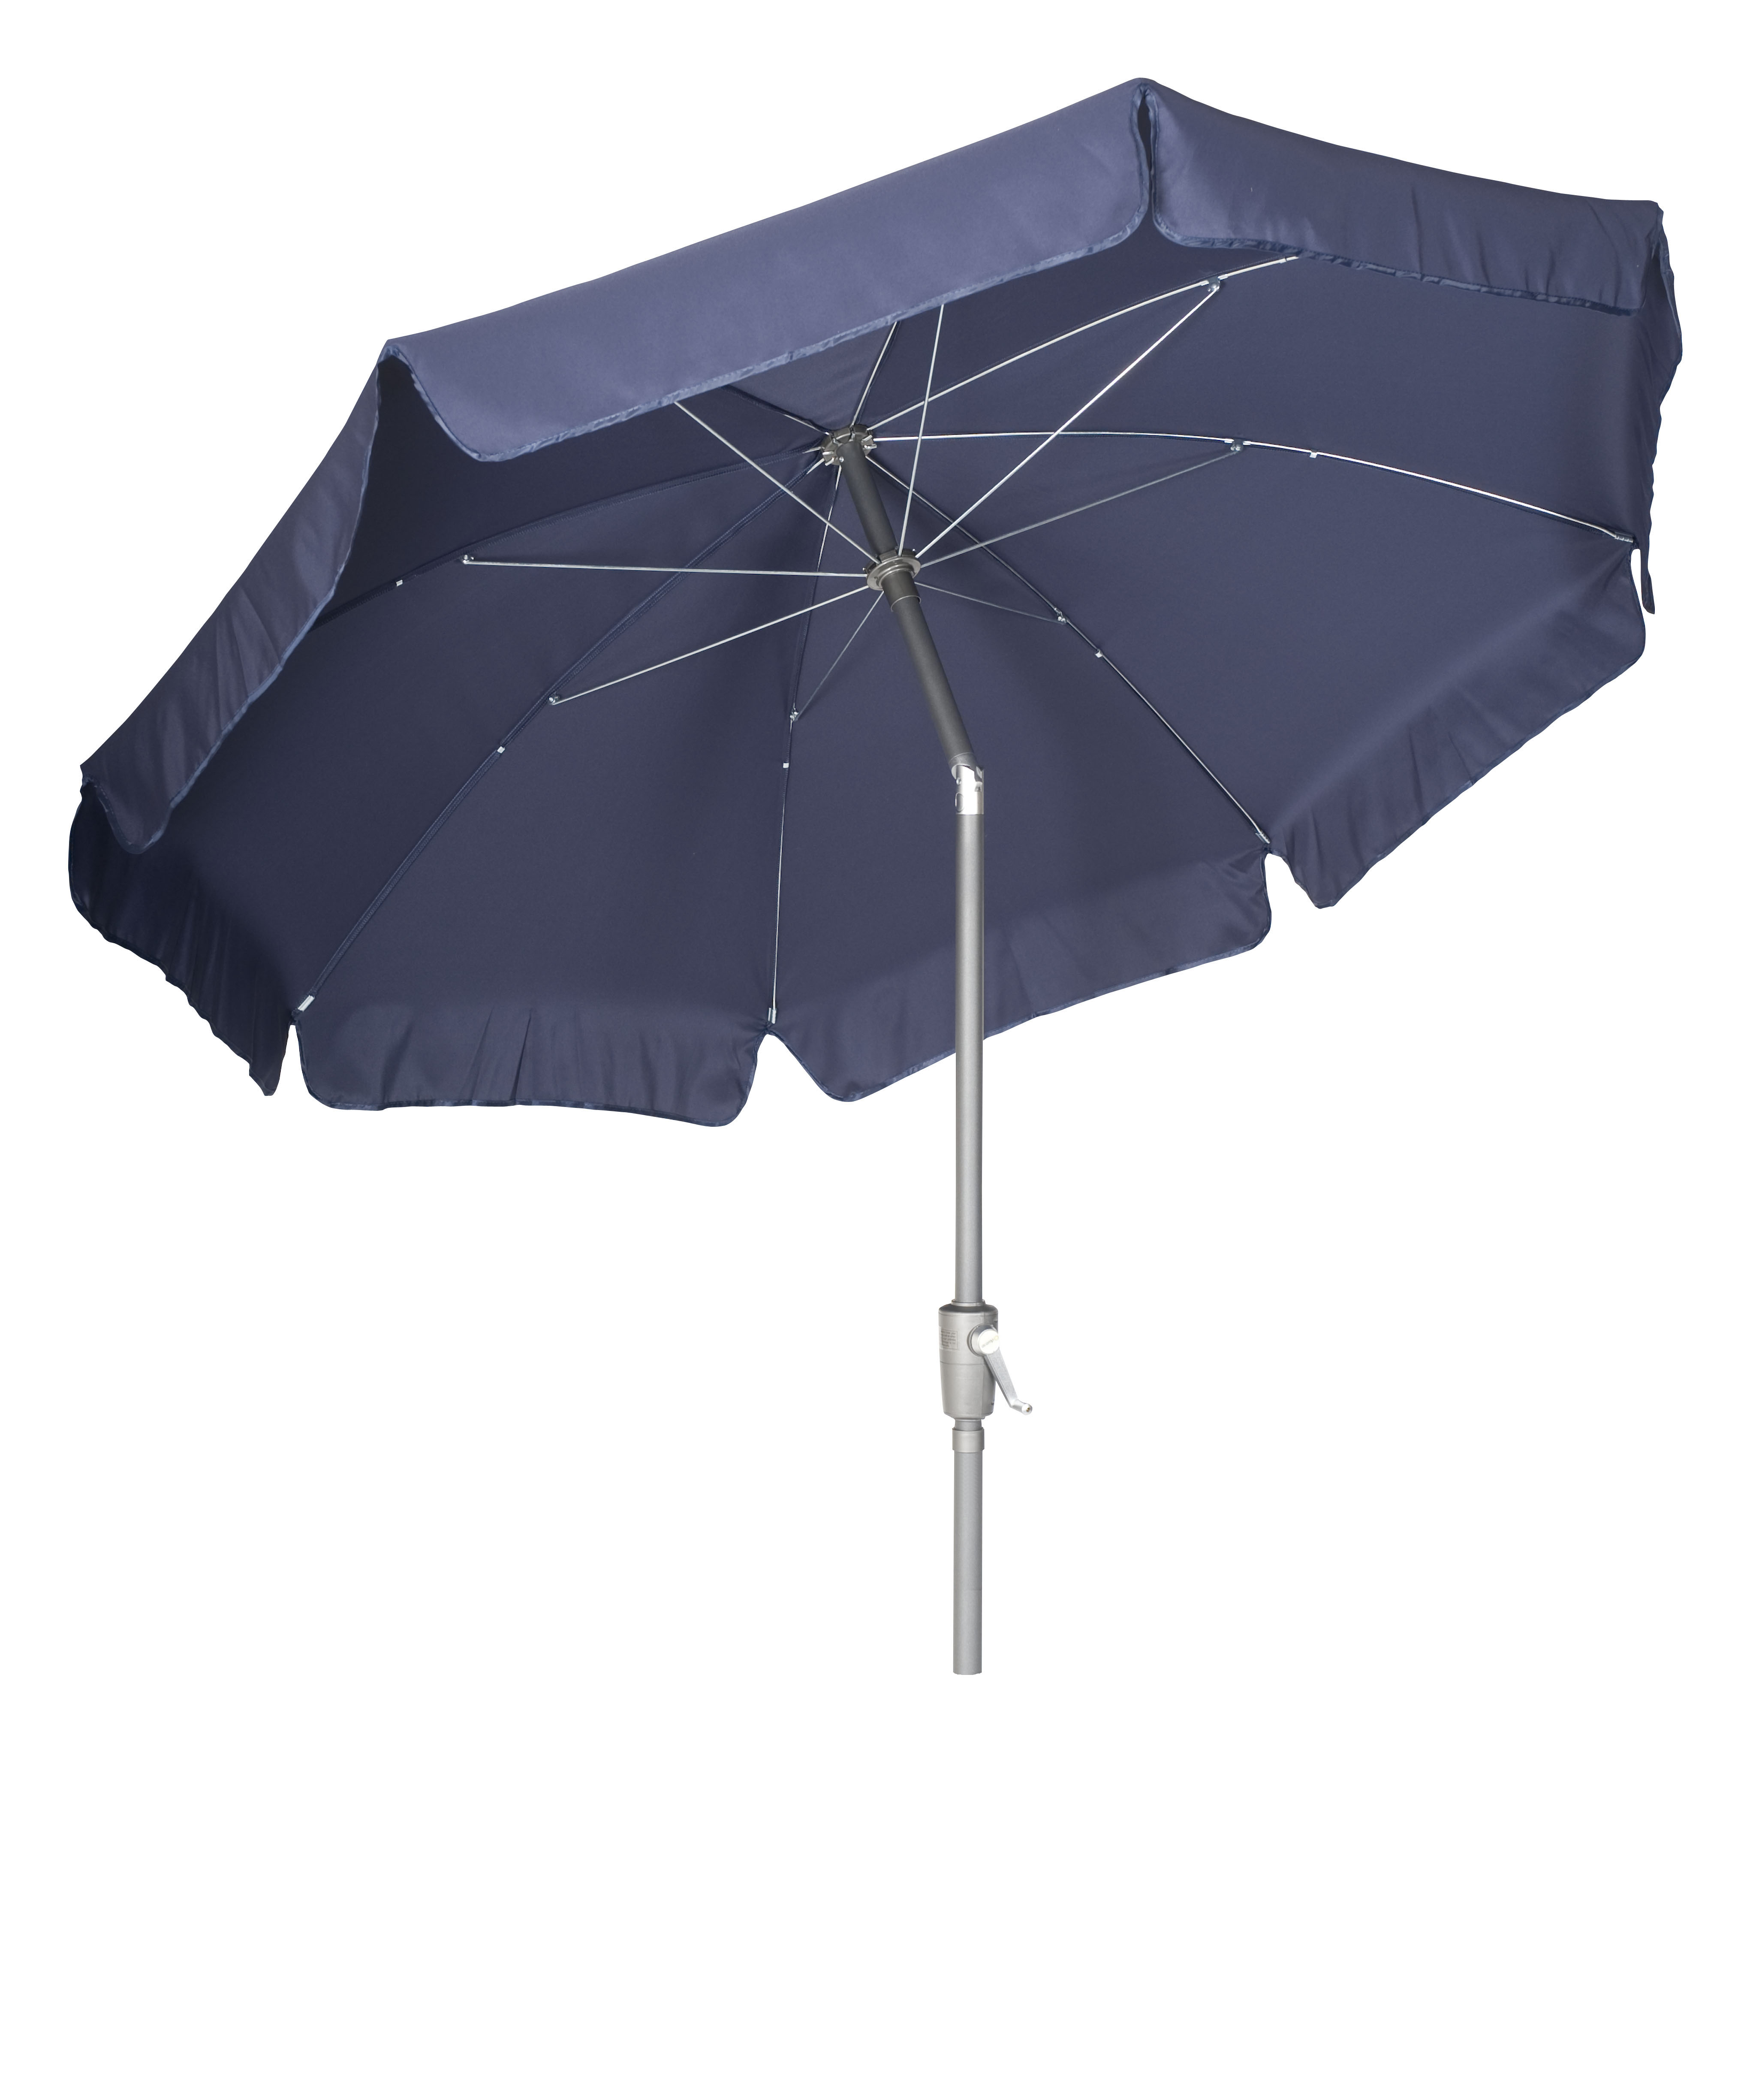 garden parasol navy umbrella aluminium tilting pole. Black Bedroom Furniture Sets. Home Design Ideas